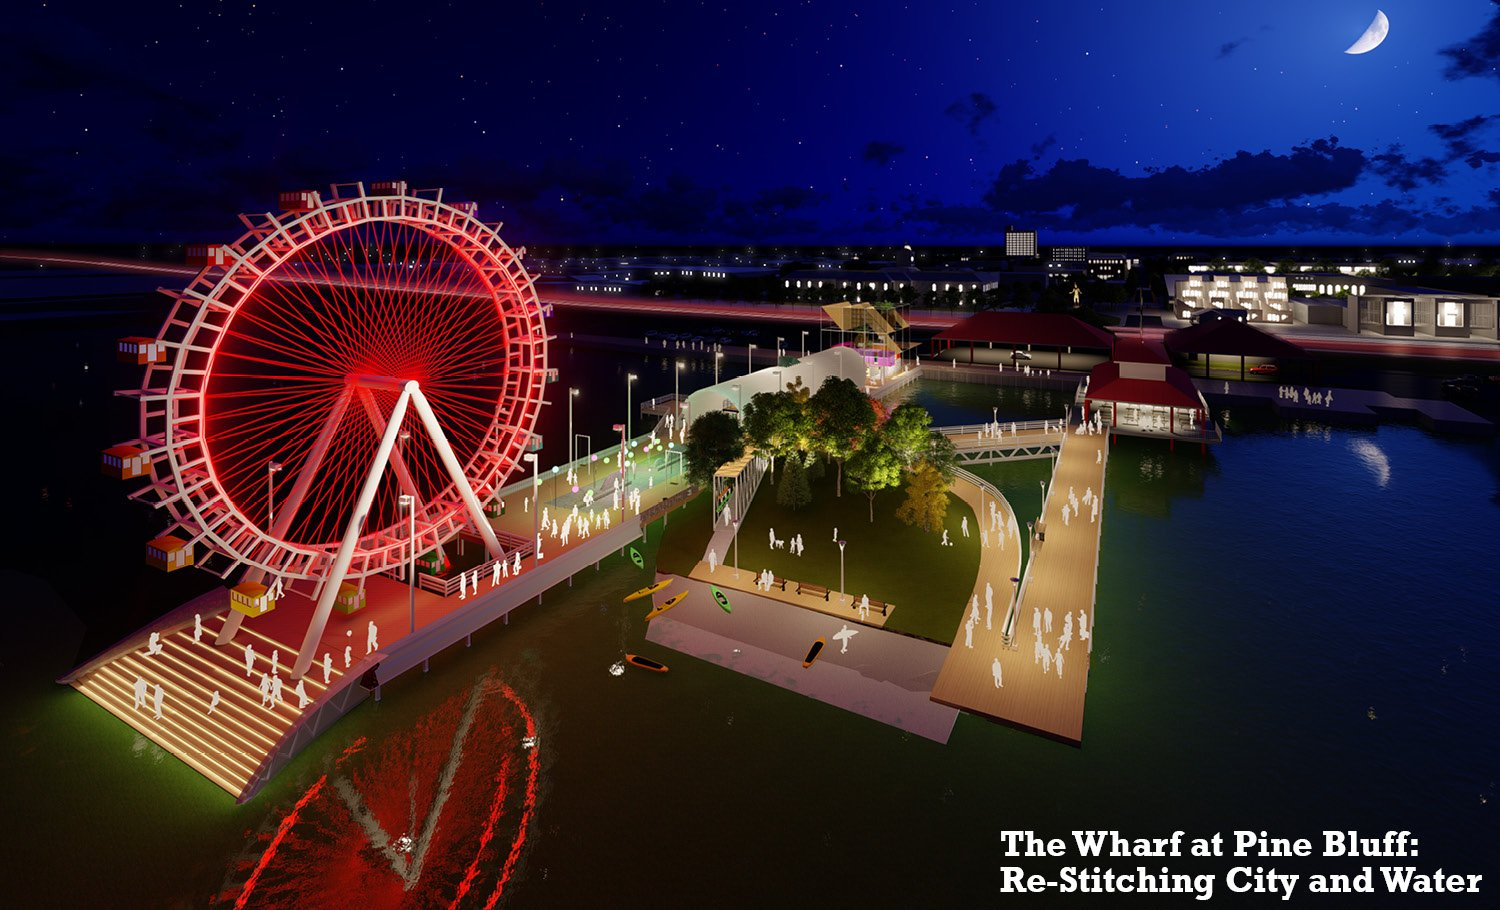 The Wharf at Pine Bluff: Re-Stitching City and Water University of Arkansas Community Design Center